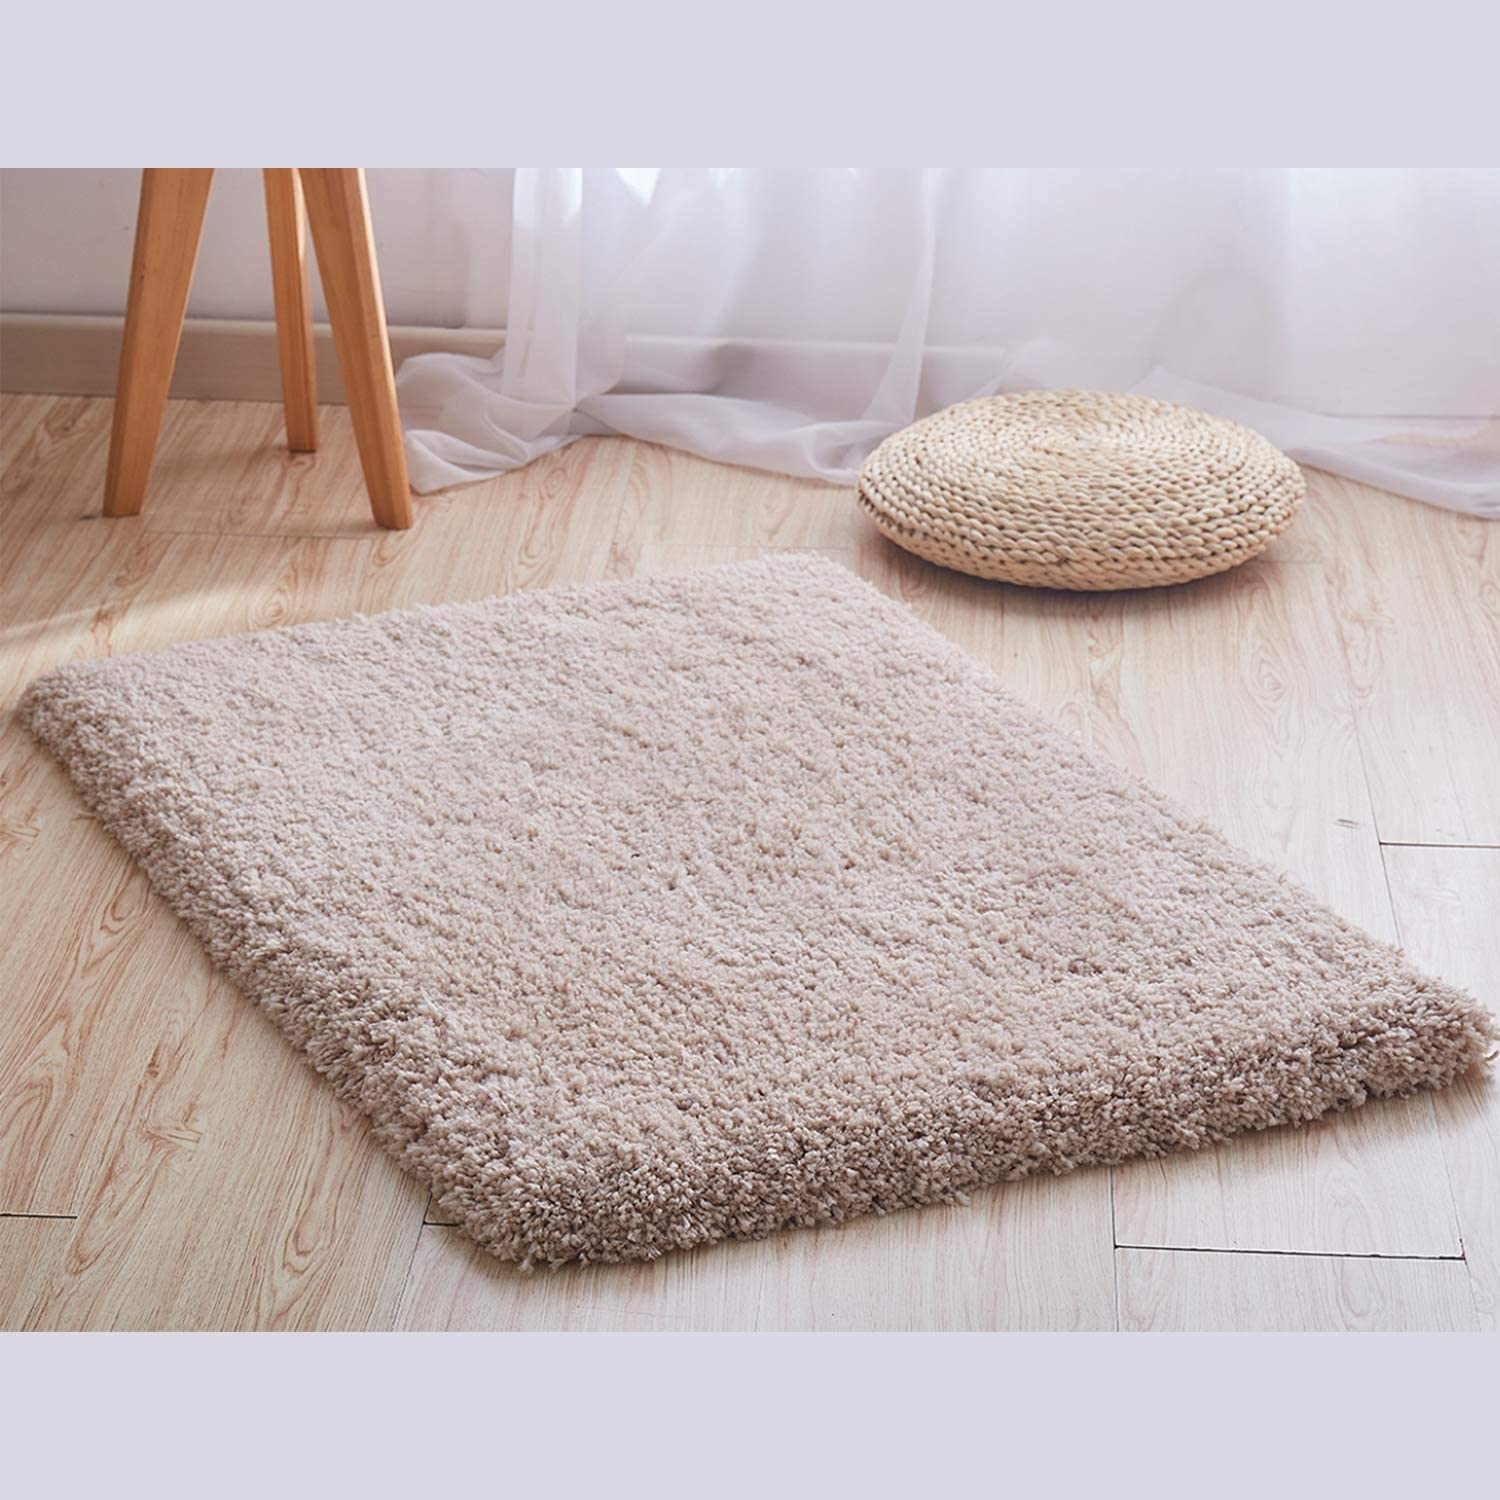 Morevee Soft Area Rugs, 44x72 Inch Solid Shag Collection Modern Plush Cloud Beige Area Rug Dining Room Home Decor Living Room Floor Carpets Fluffy Mat (Medium)